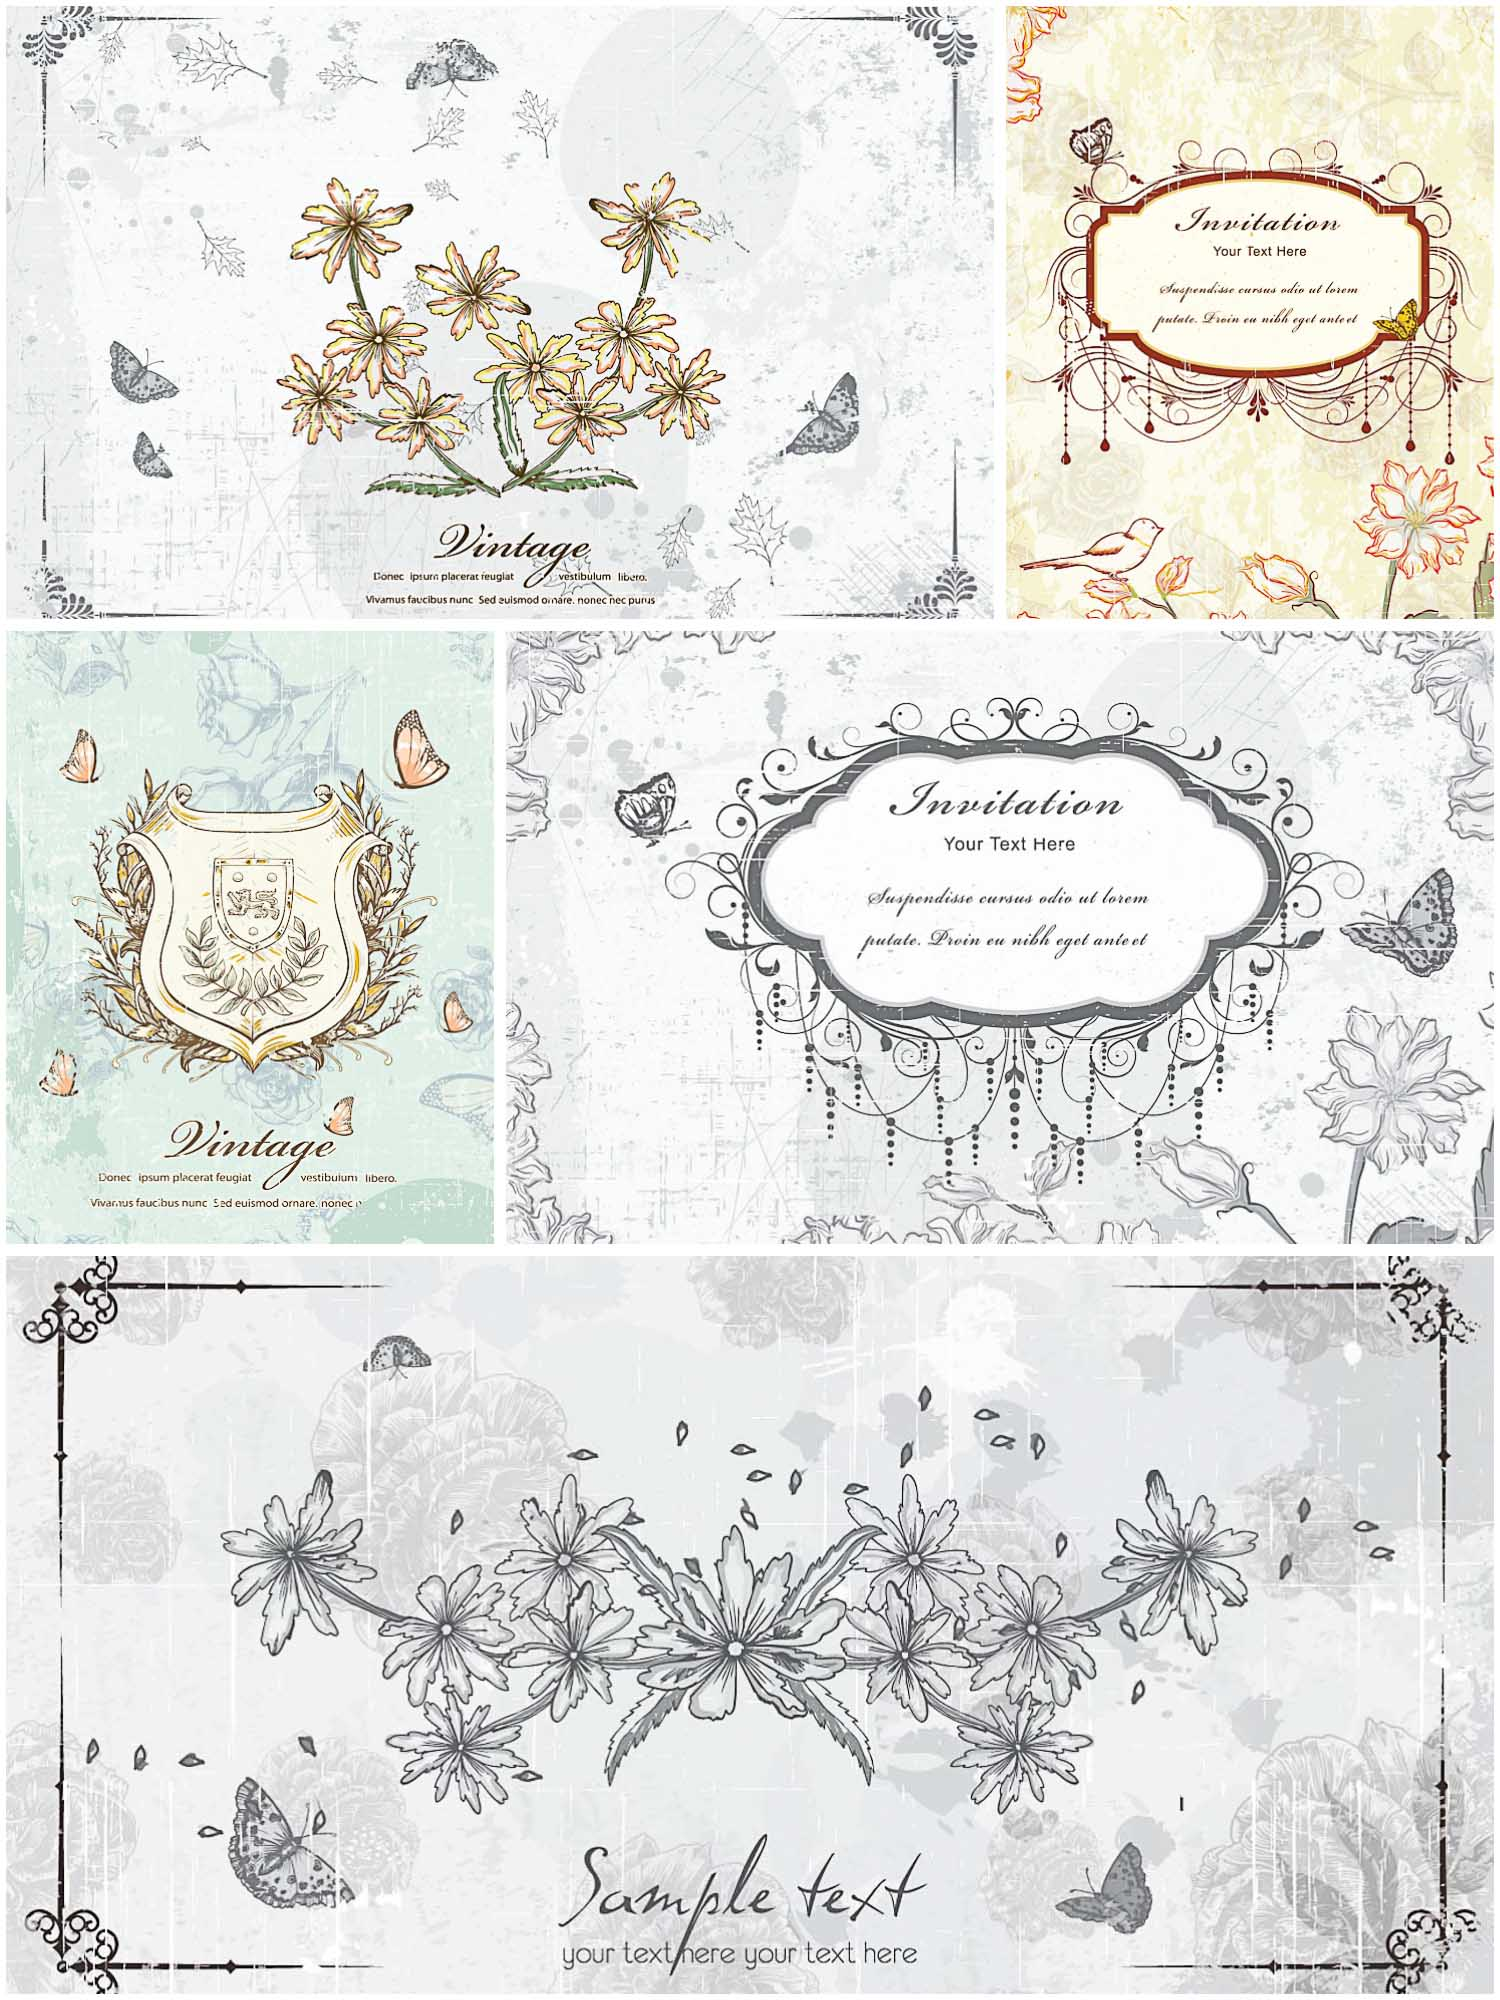 Sweet invitation cards set vector